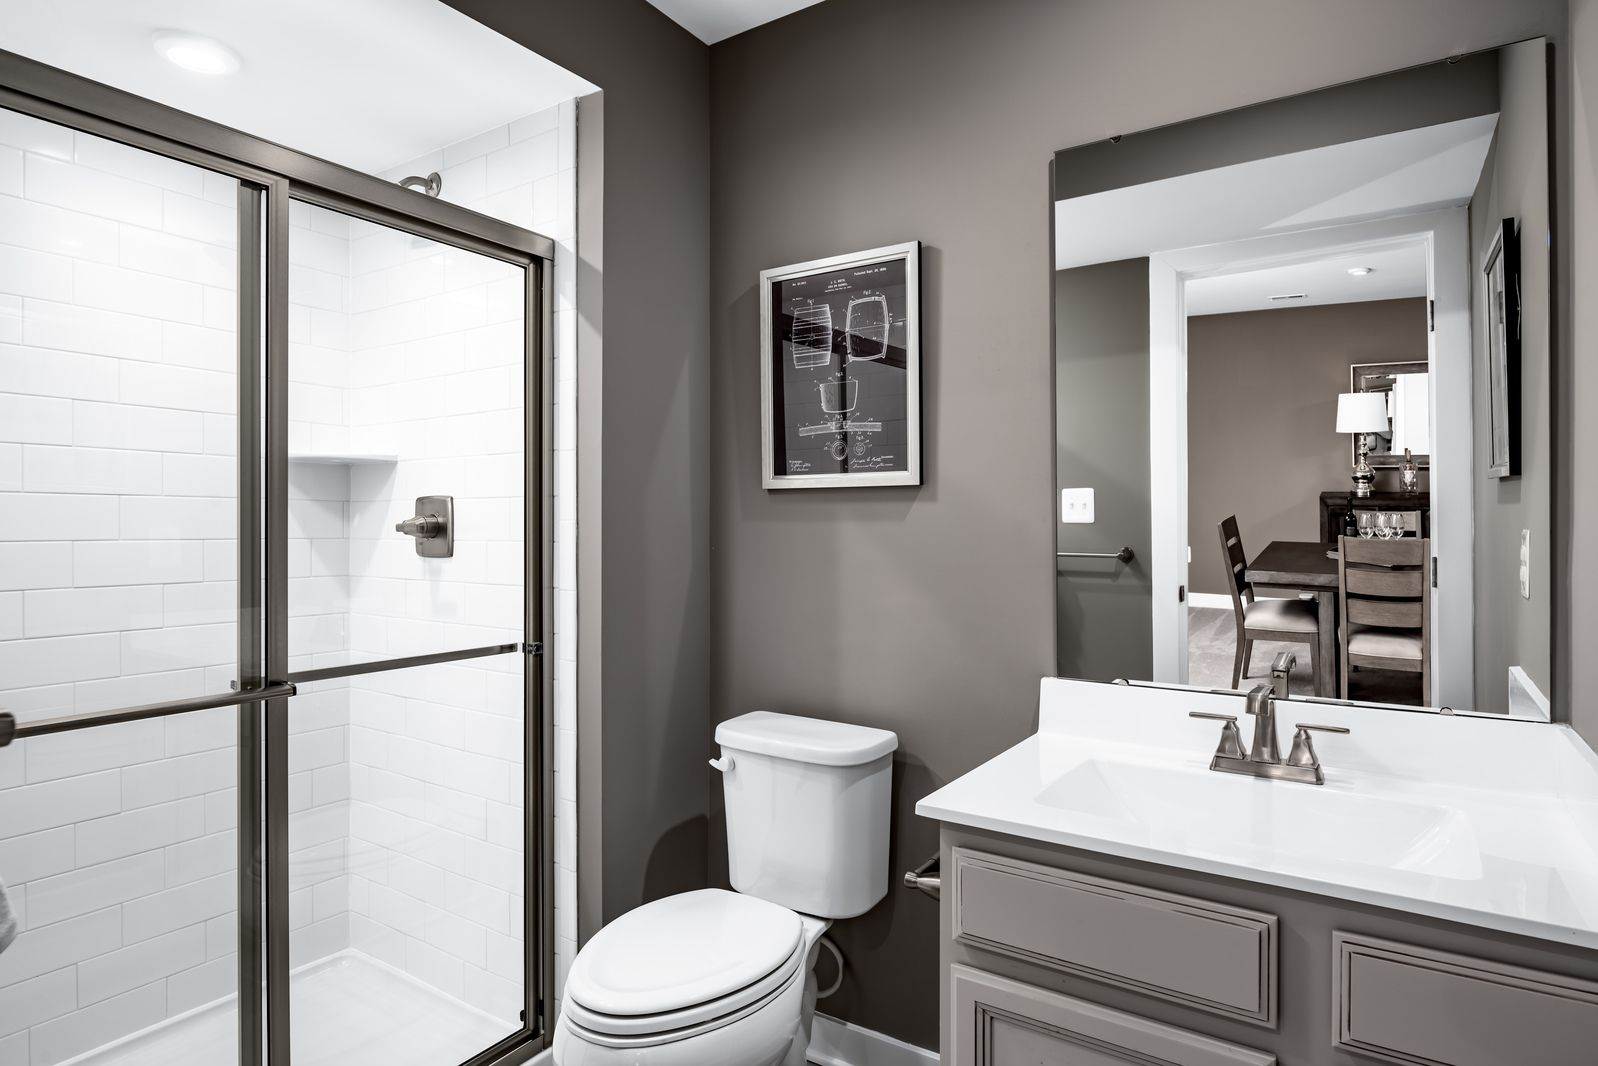 Bathroom featured in the Alberti Ranch Slab -  Basement Available By Ryan Homes in Chicago, IL